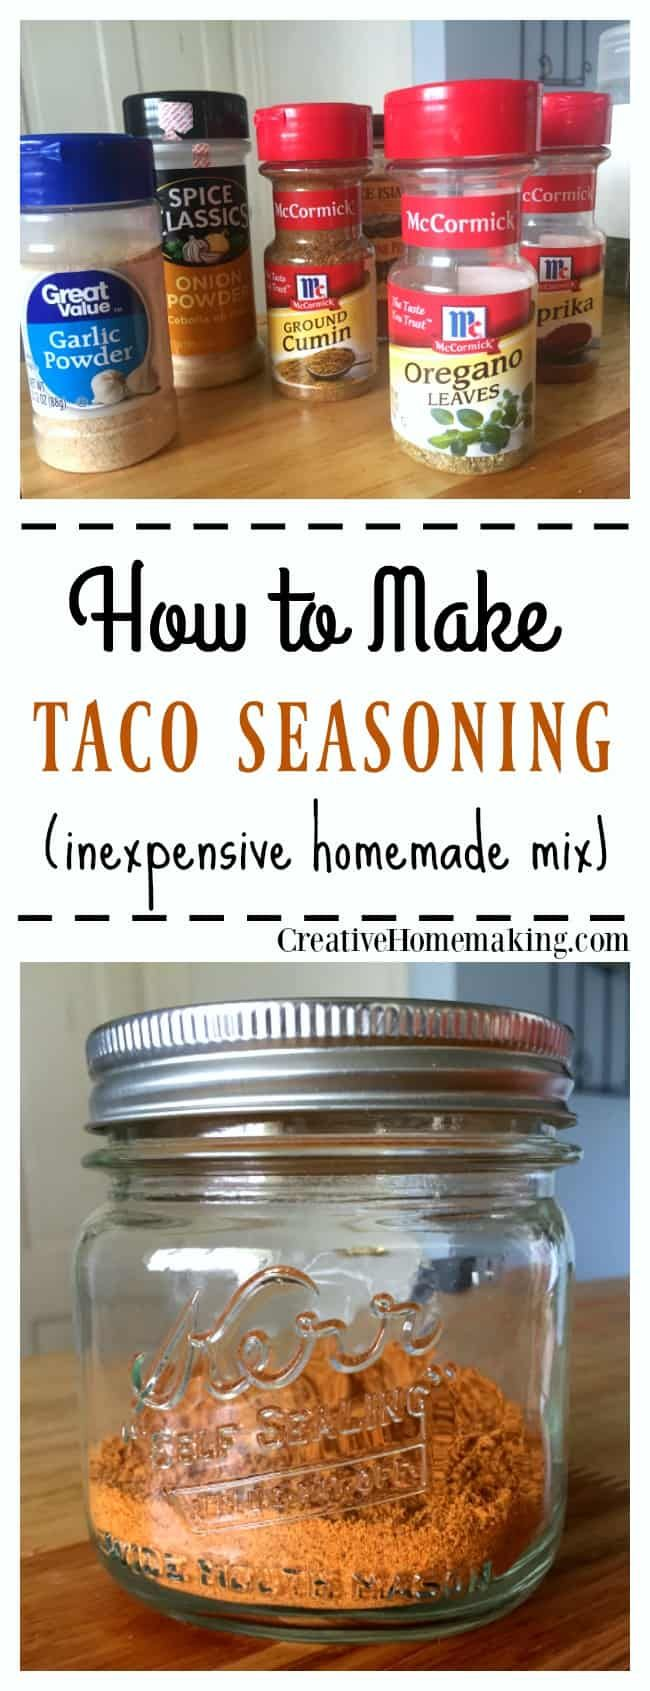 Taco Seasoning Mix Recipe #diytacoseasoning